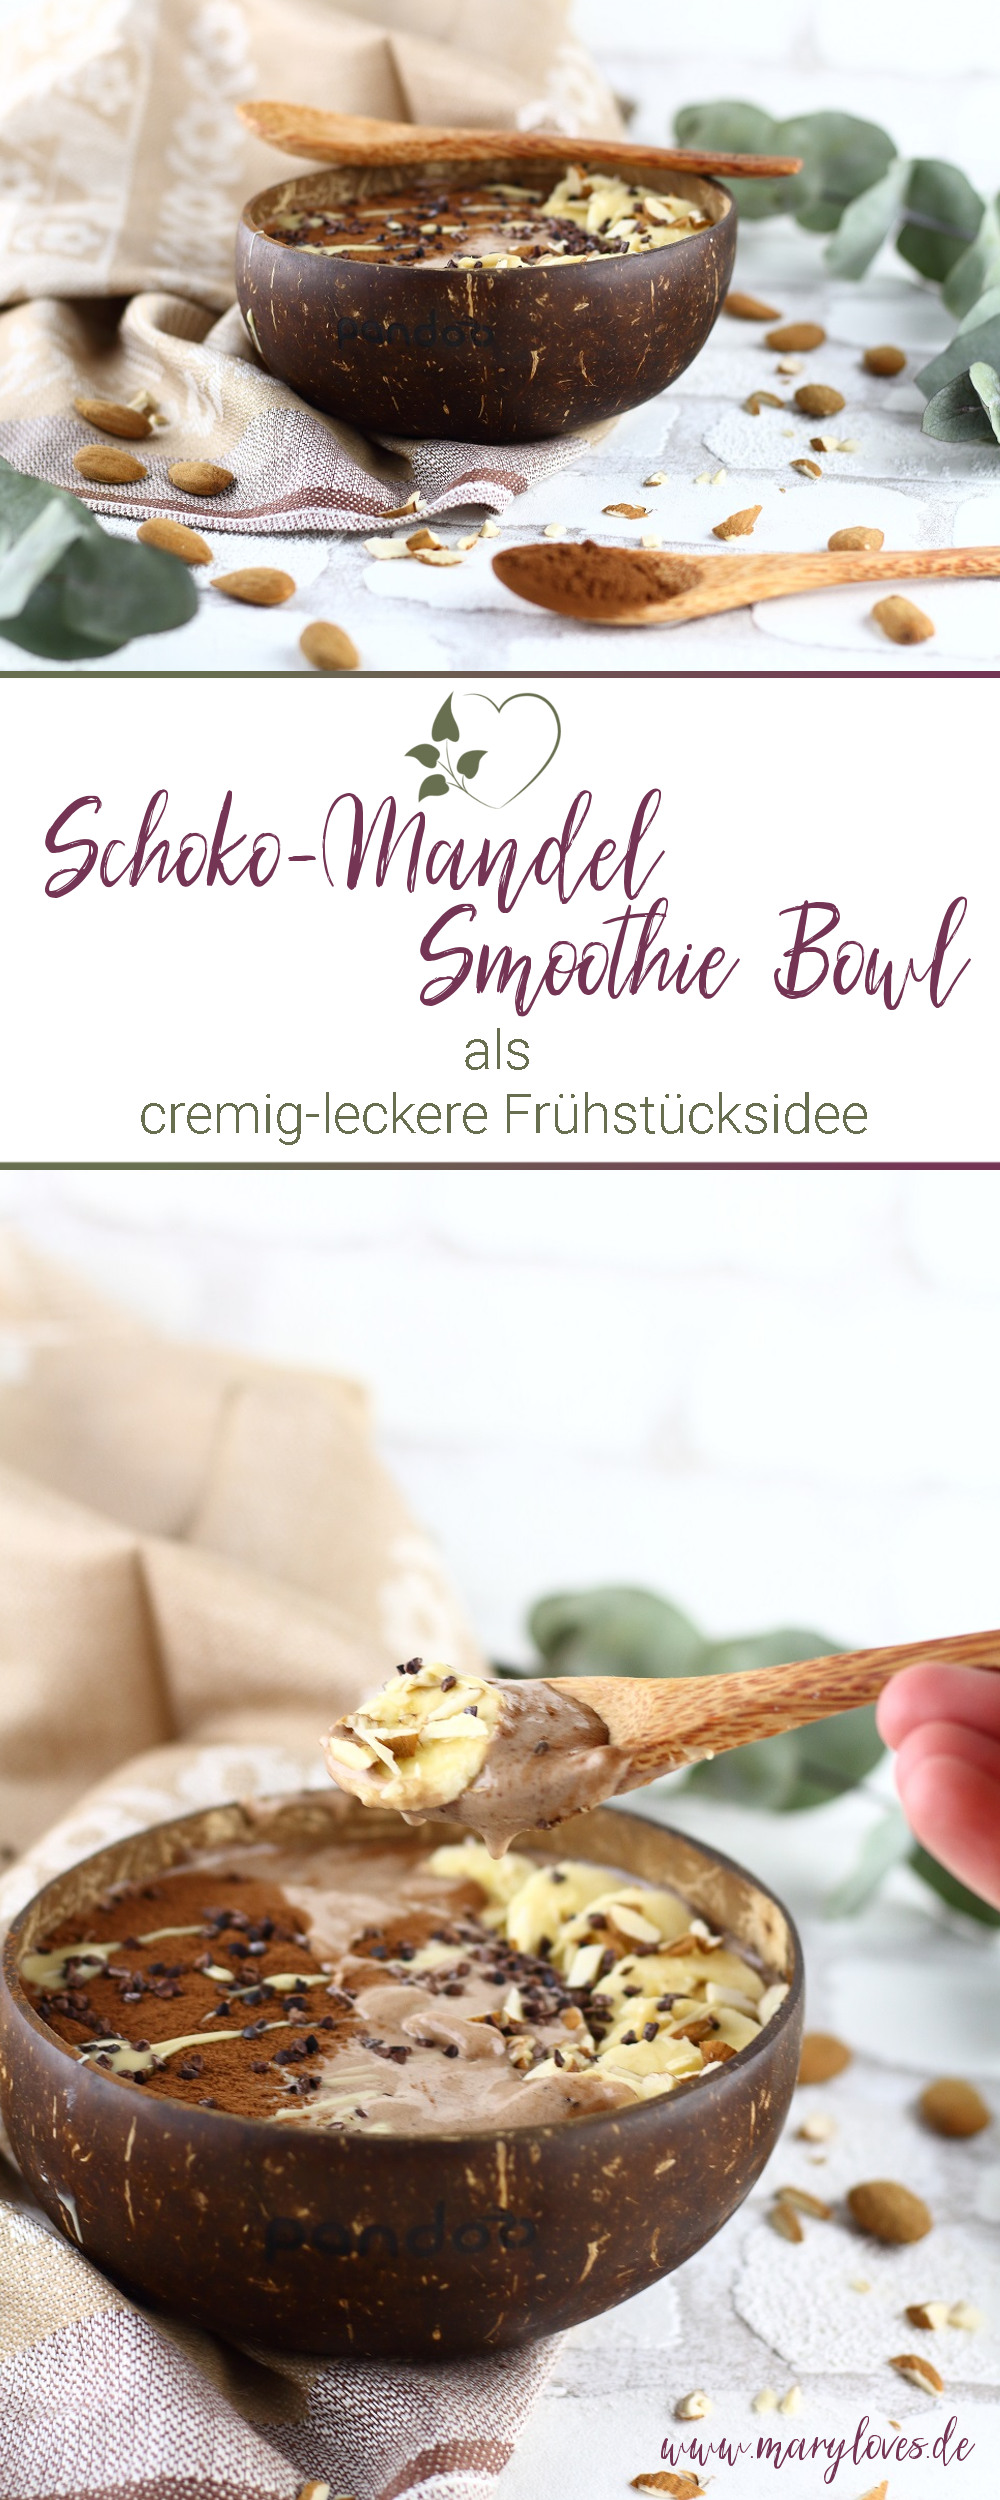 [Anzeige] Cremig-leckere Schoko-Mandel Smoothie Bowl - #smoothiebowl #smoothie #vegan #schokomandelsmoothiebowl #zuckerfrei #veganerezepte #zuckerfreierezepte #superfood